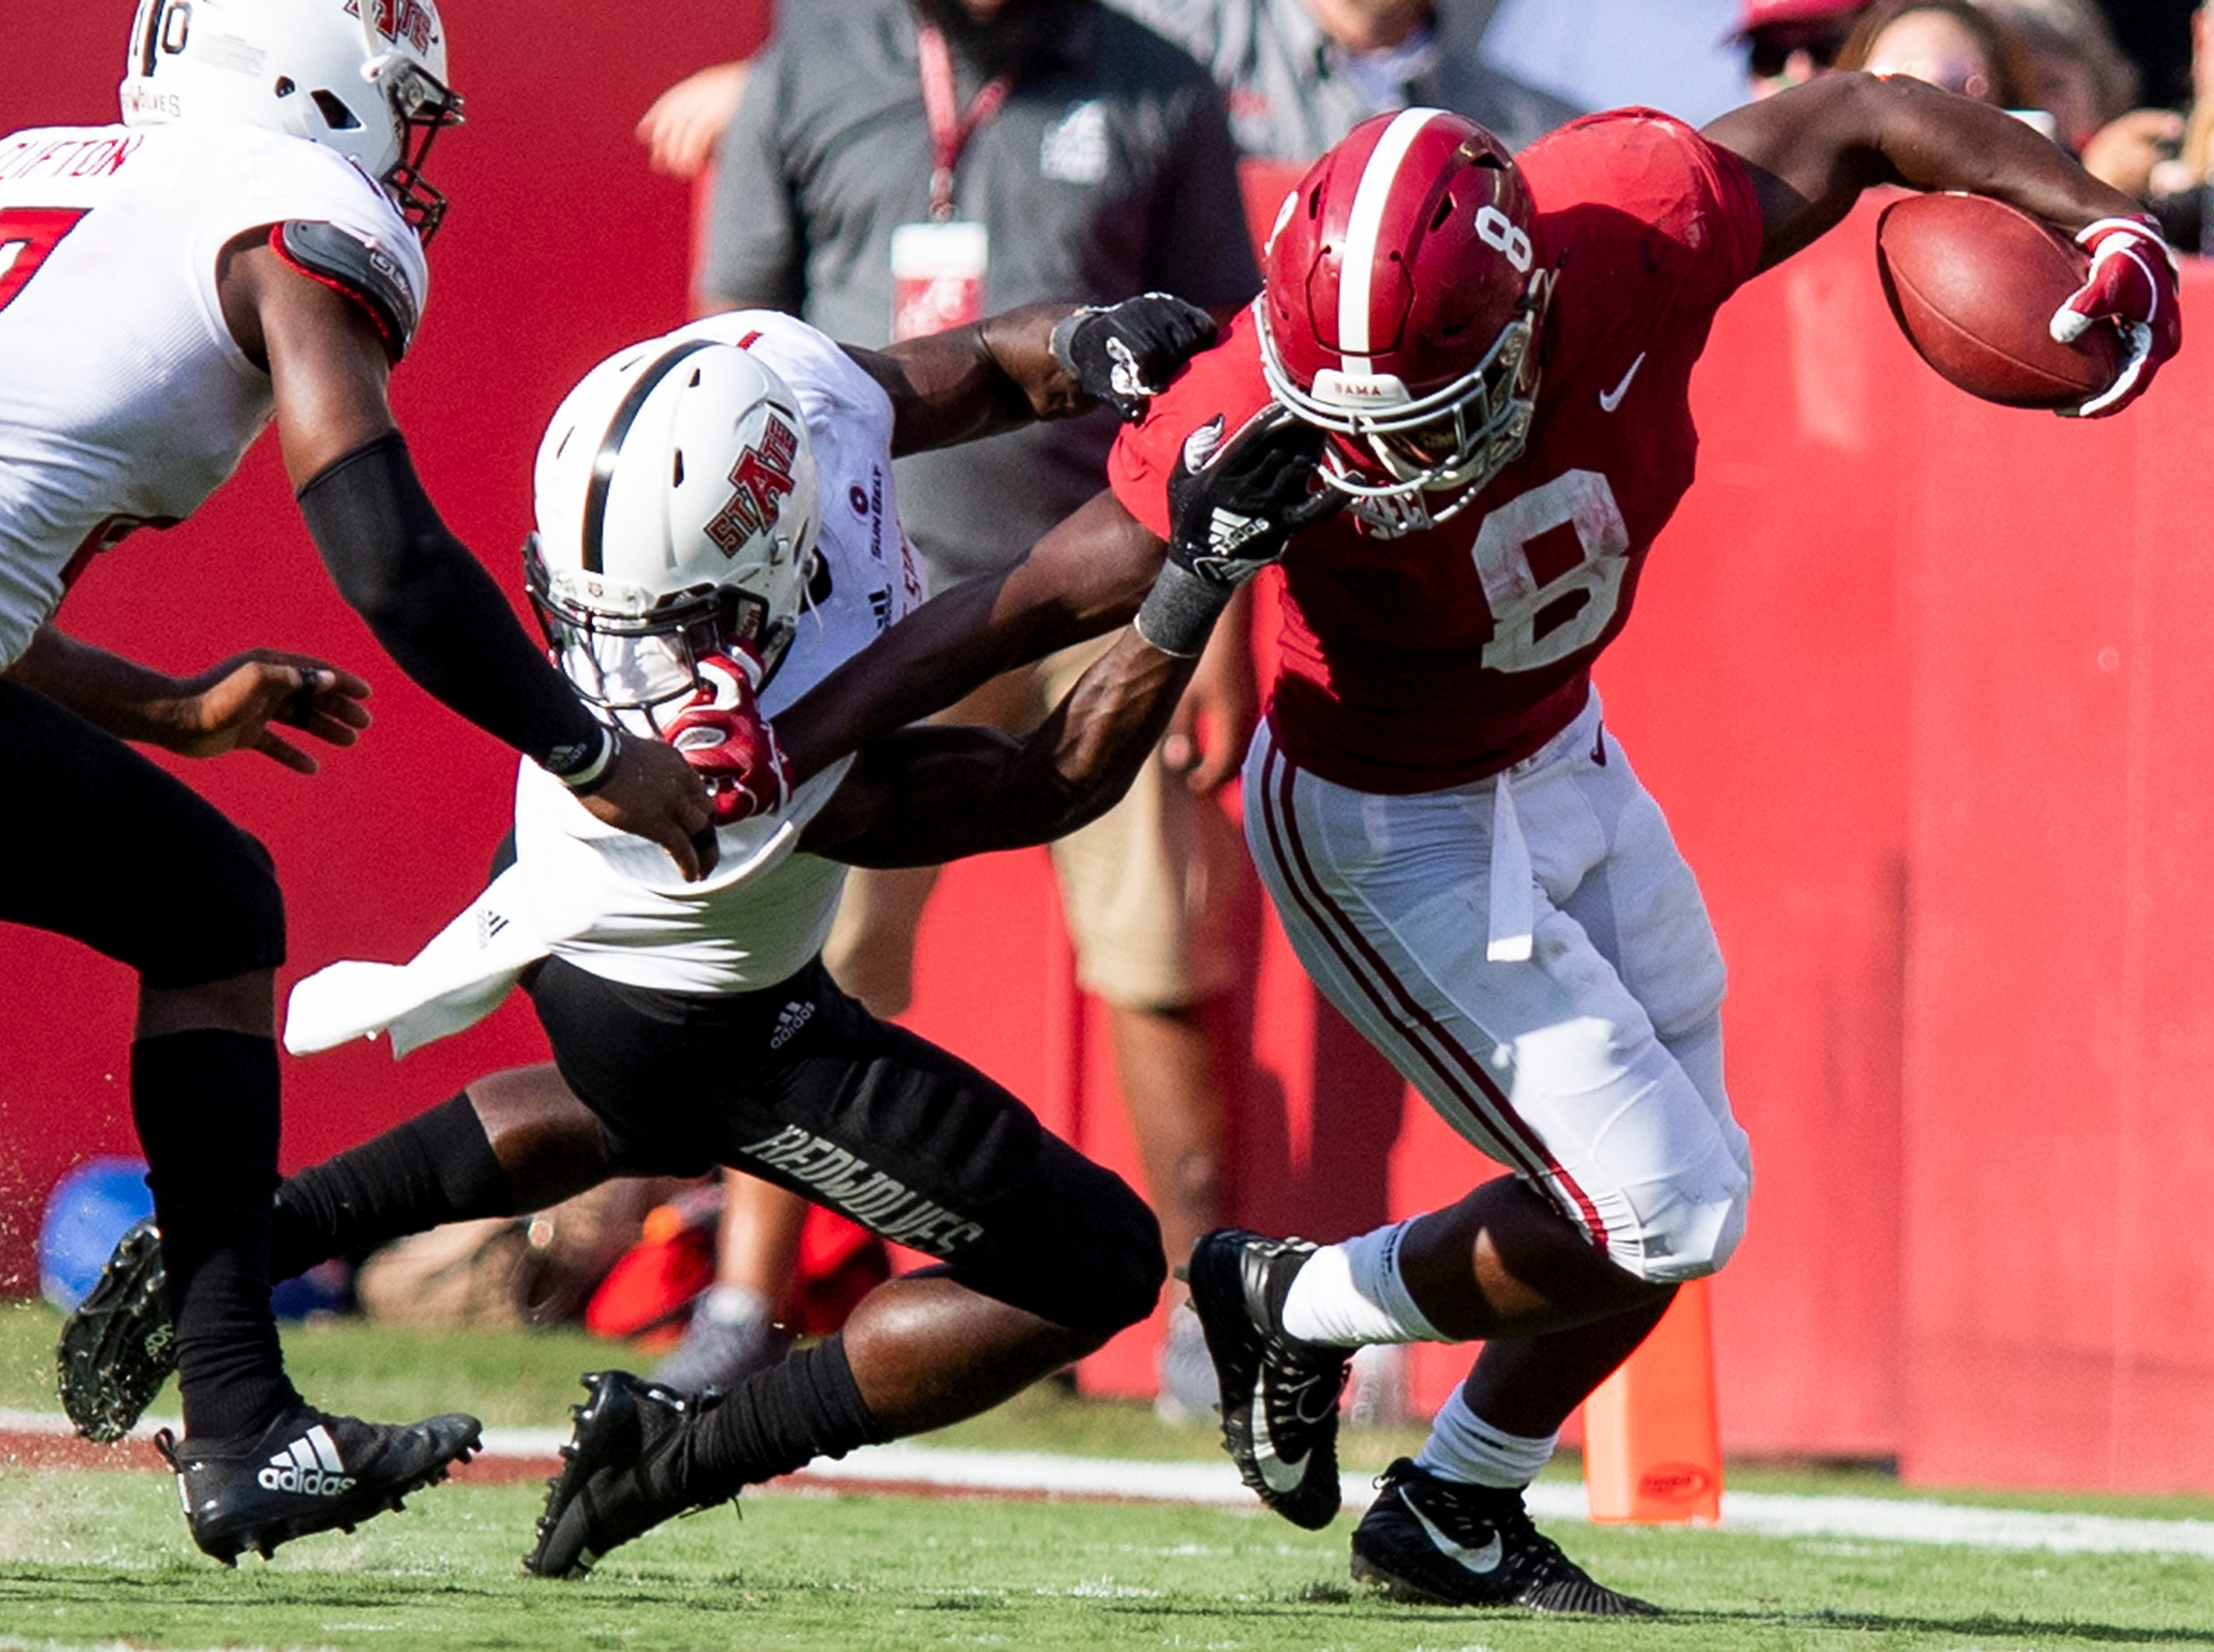 Alabama running back Josh Jacobs (8) is face masked by Arkansas State corner back Jerry Jacobs (1) in second half action at Bryant Denny Stadium in Tuscaloosa, Ala., on Saturday September 8, 2018.